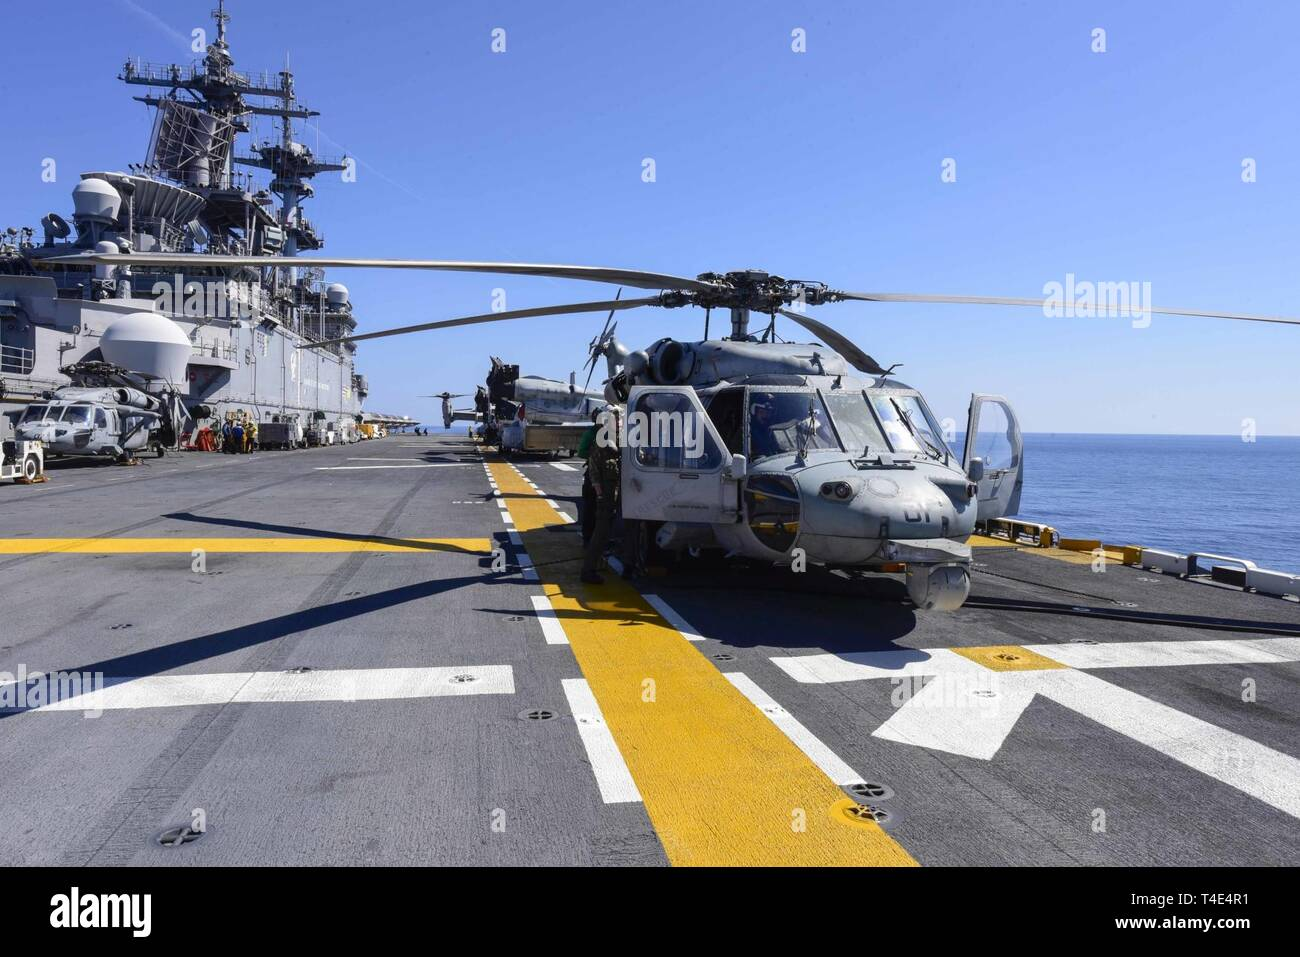 SOUTH CHINA SEA (March 29, 2019) - An MH-60S Sea Hawk, assigned to Helicopter Sea Combat Squadron (HSC) 25, is secured to the flight deck of the amphibious assault ship USS Wasp (LHD 1). Wasp, flagship of Wasp Amphibious Ready Group, is operating in the Indo-Pacific region to enhance interoperability with partners and serve as a lethal ready-response force for any type of contingency. - Stock Image